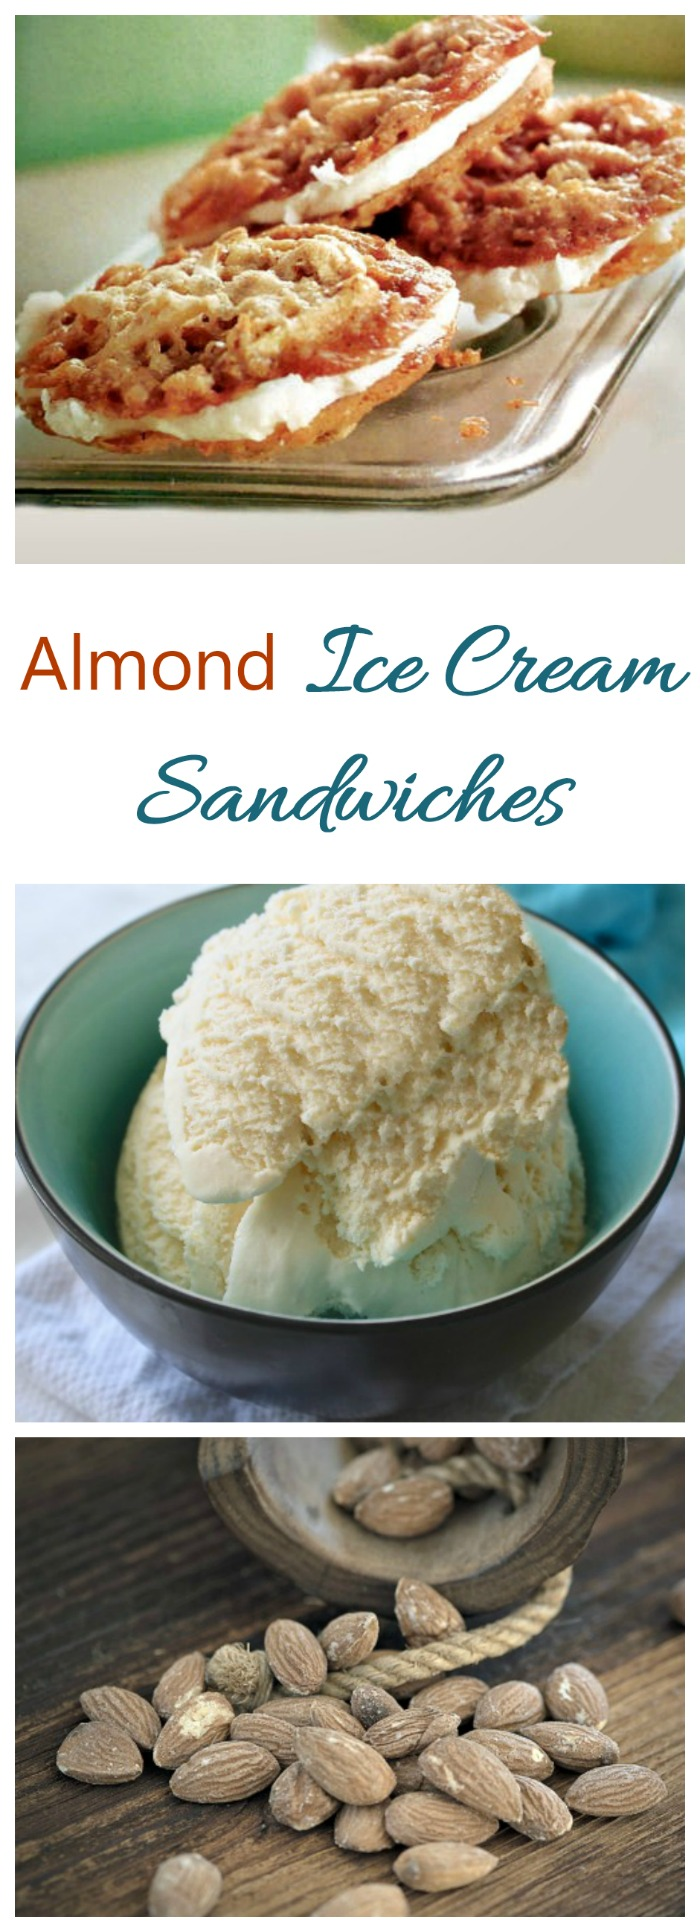 This almond ice cream sandwich has two home made almond cookies filled with creamy vanilla ice cream. Perfect way to beat the summer heat!